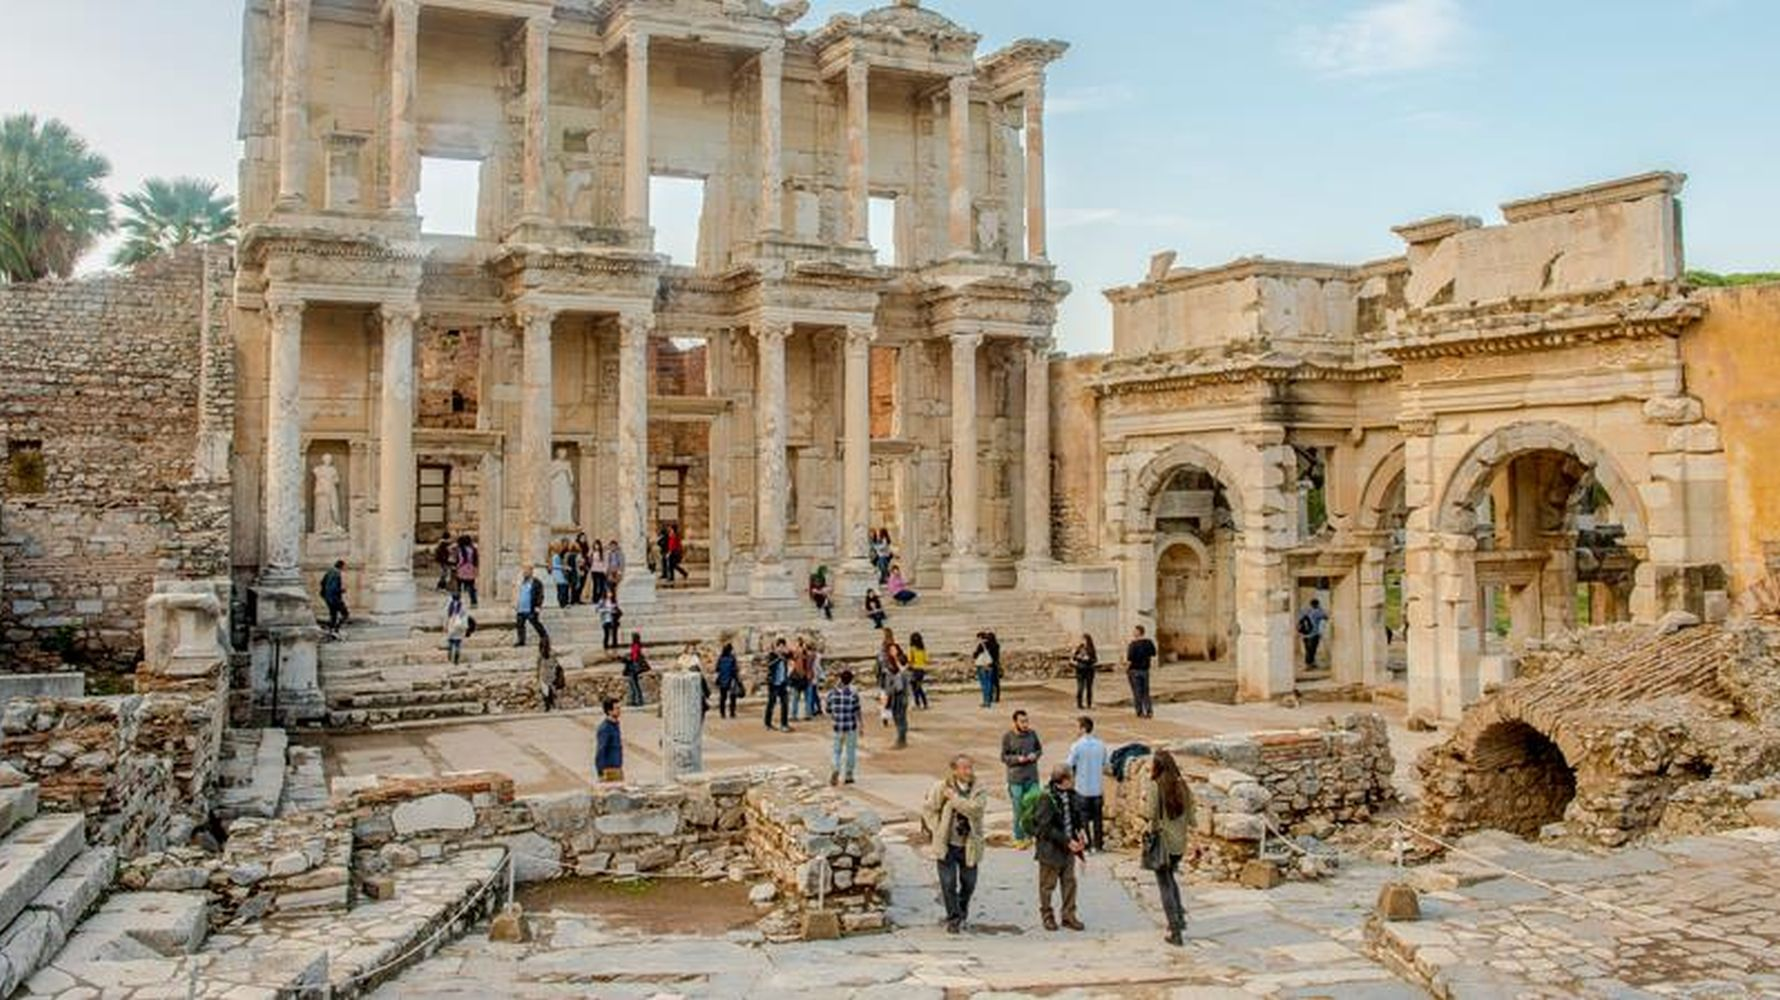 Turkey hosted a million thousand visitors in the first month